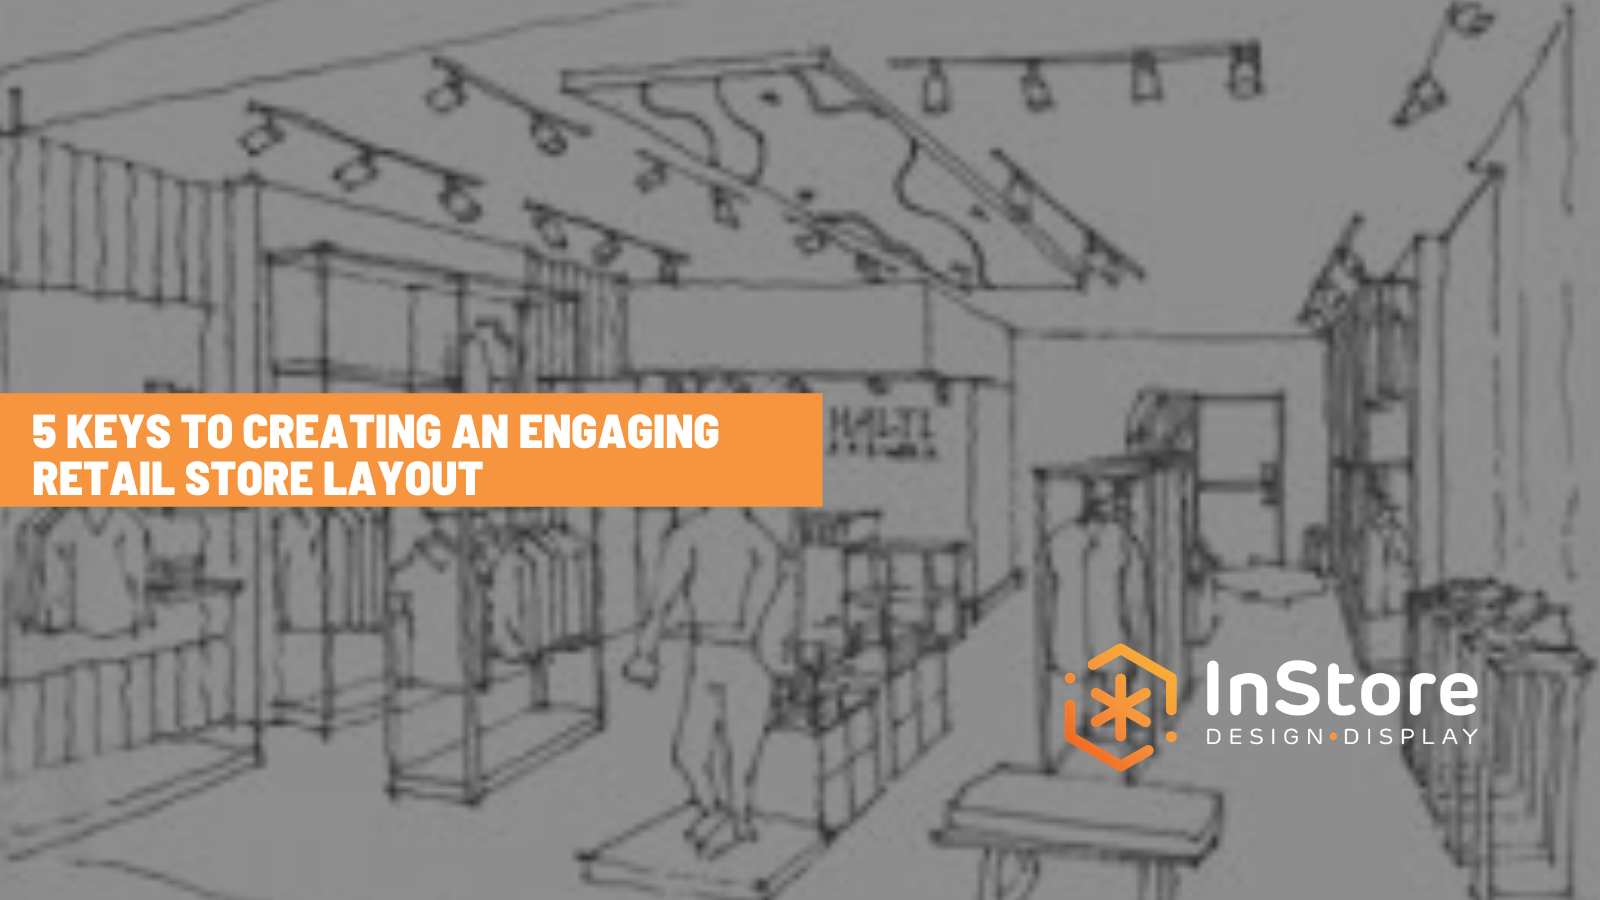 5 Keys to Creating an Engaging Retail Store Layout